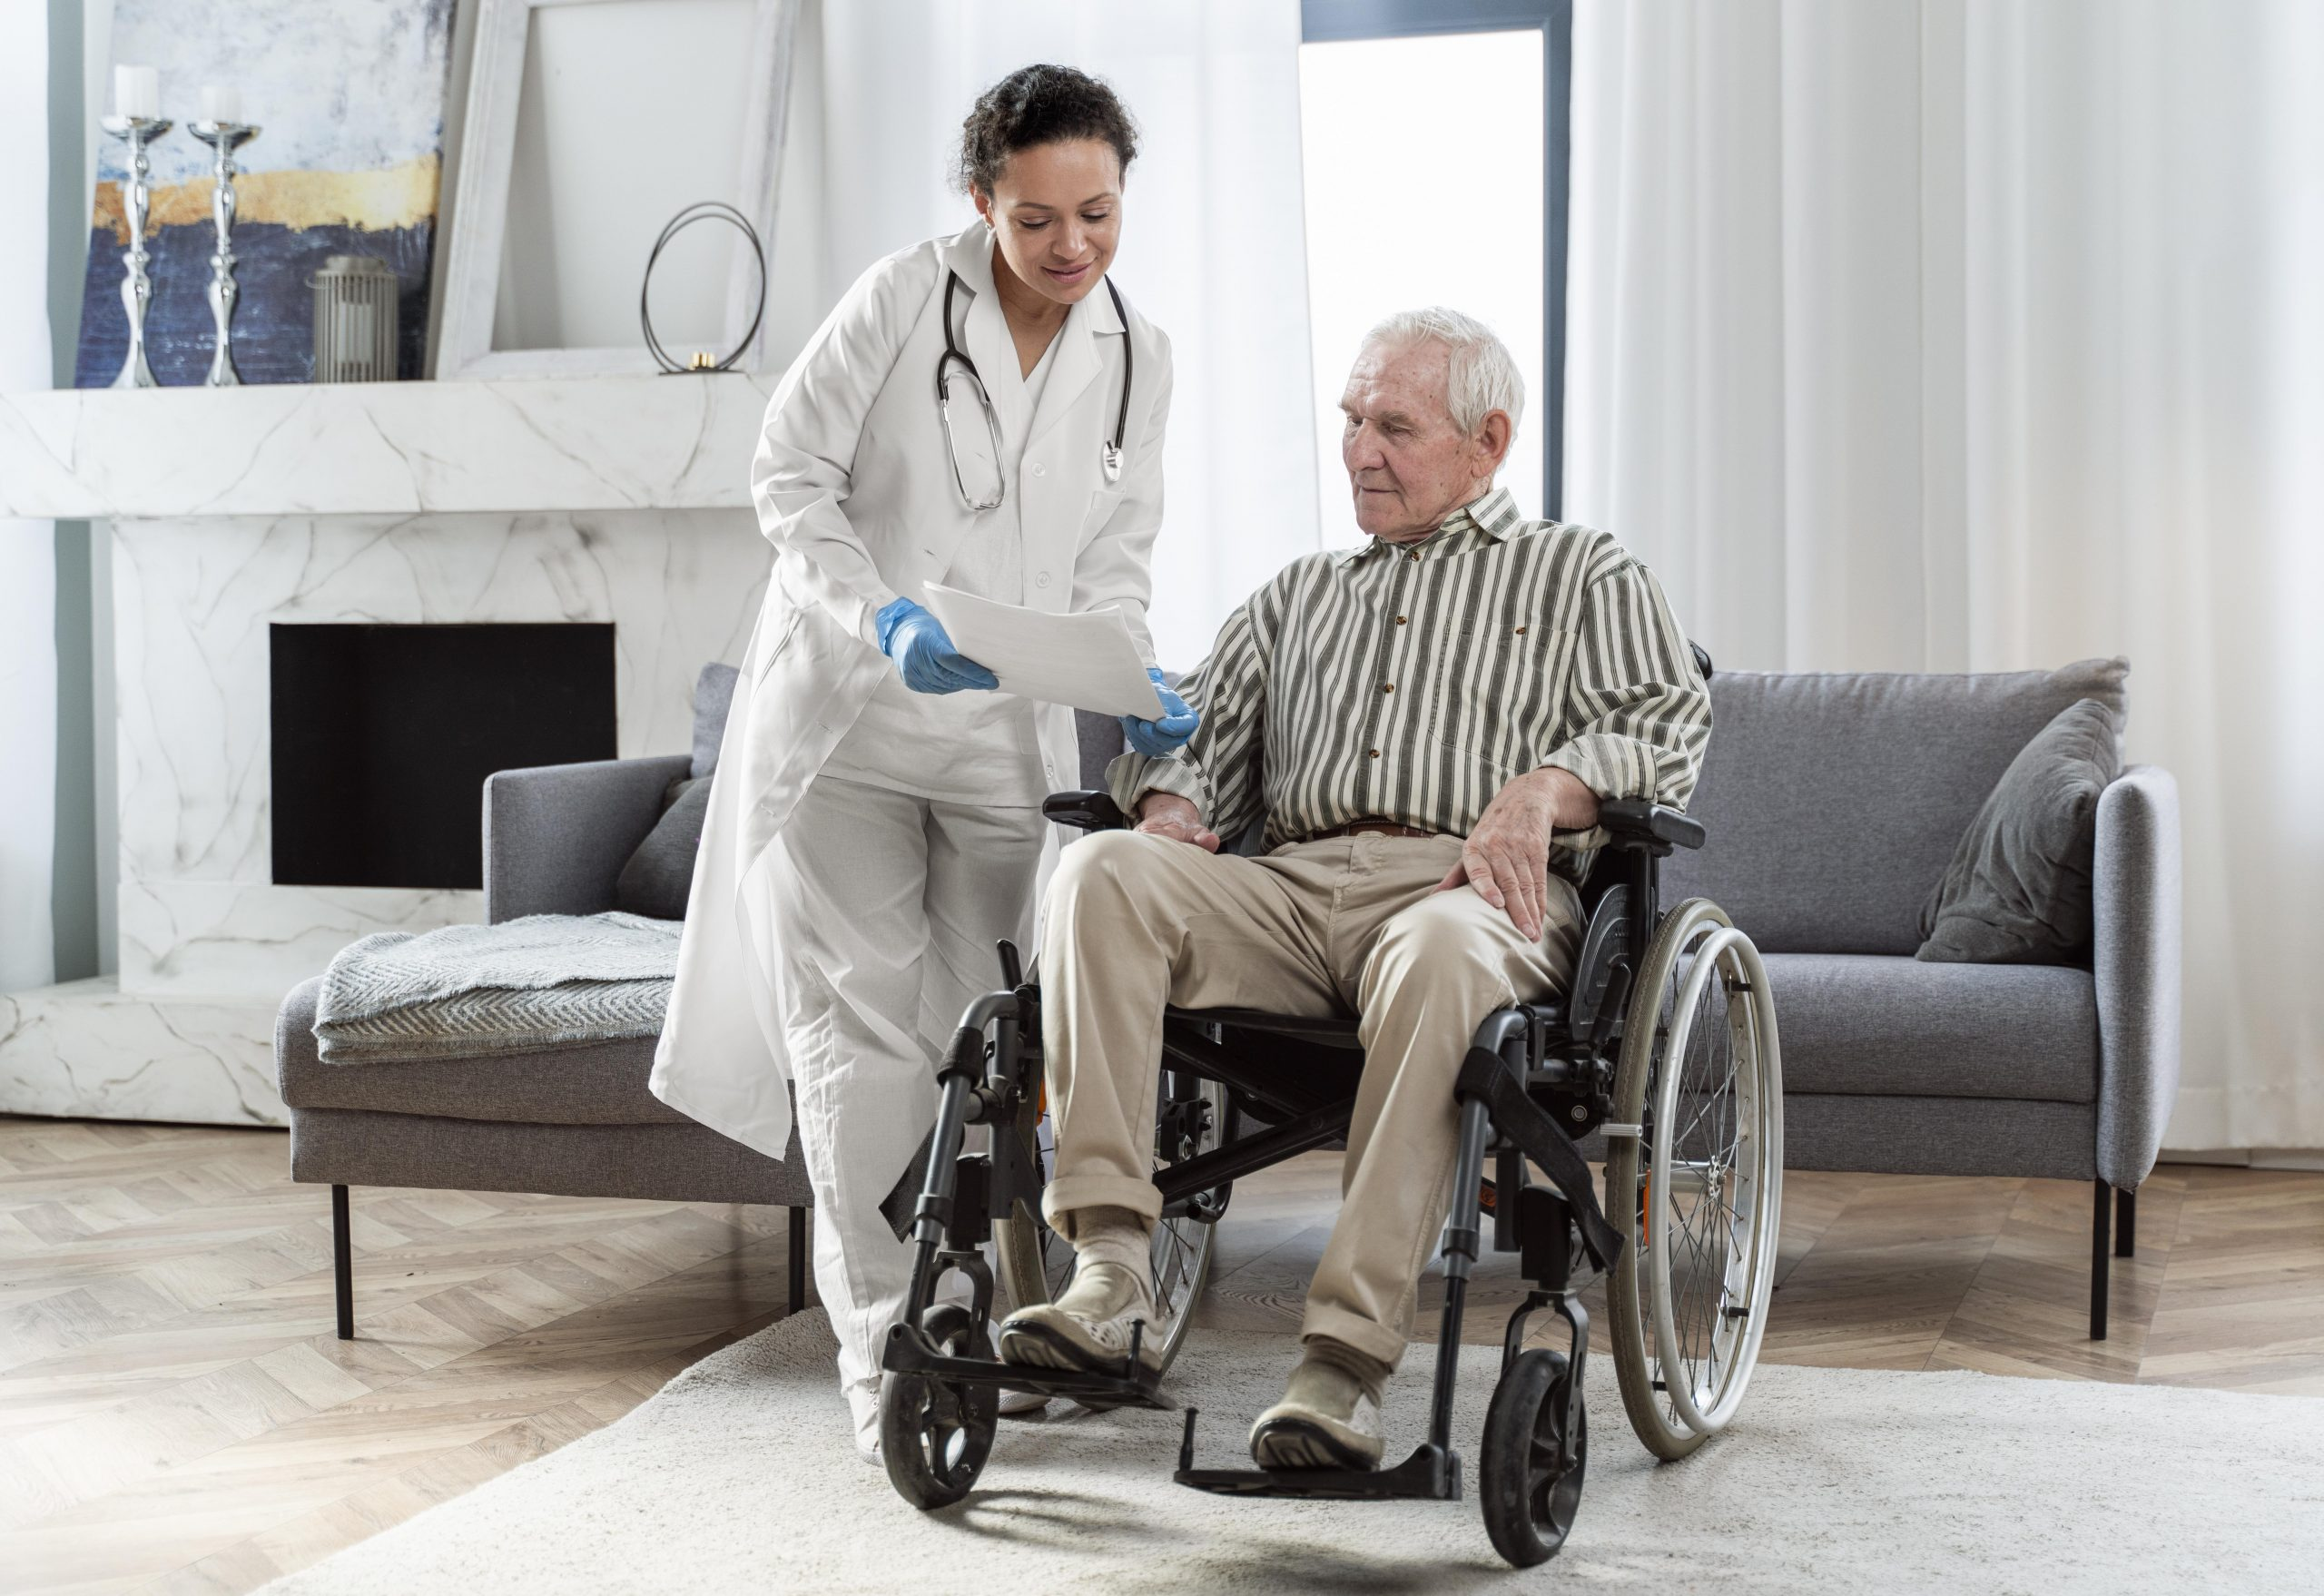 How to Control Infections in Aged Care: Re-Engineering Our Facilities